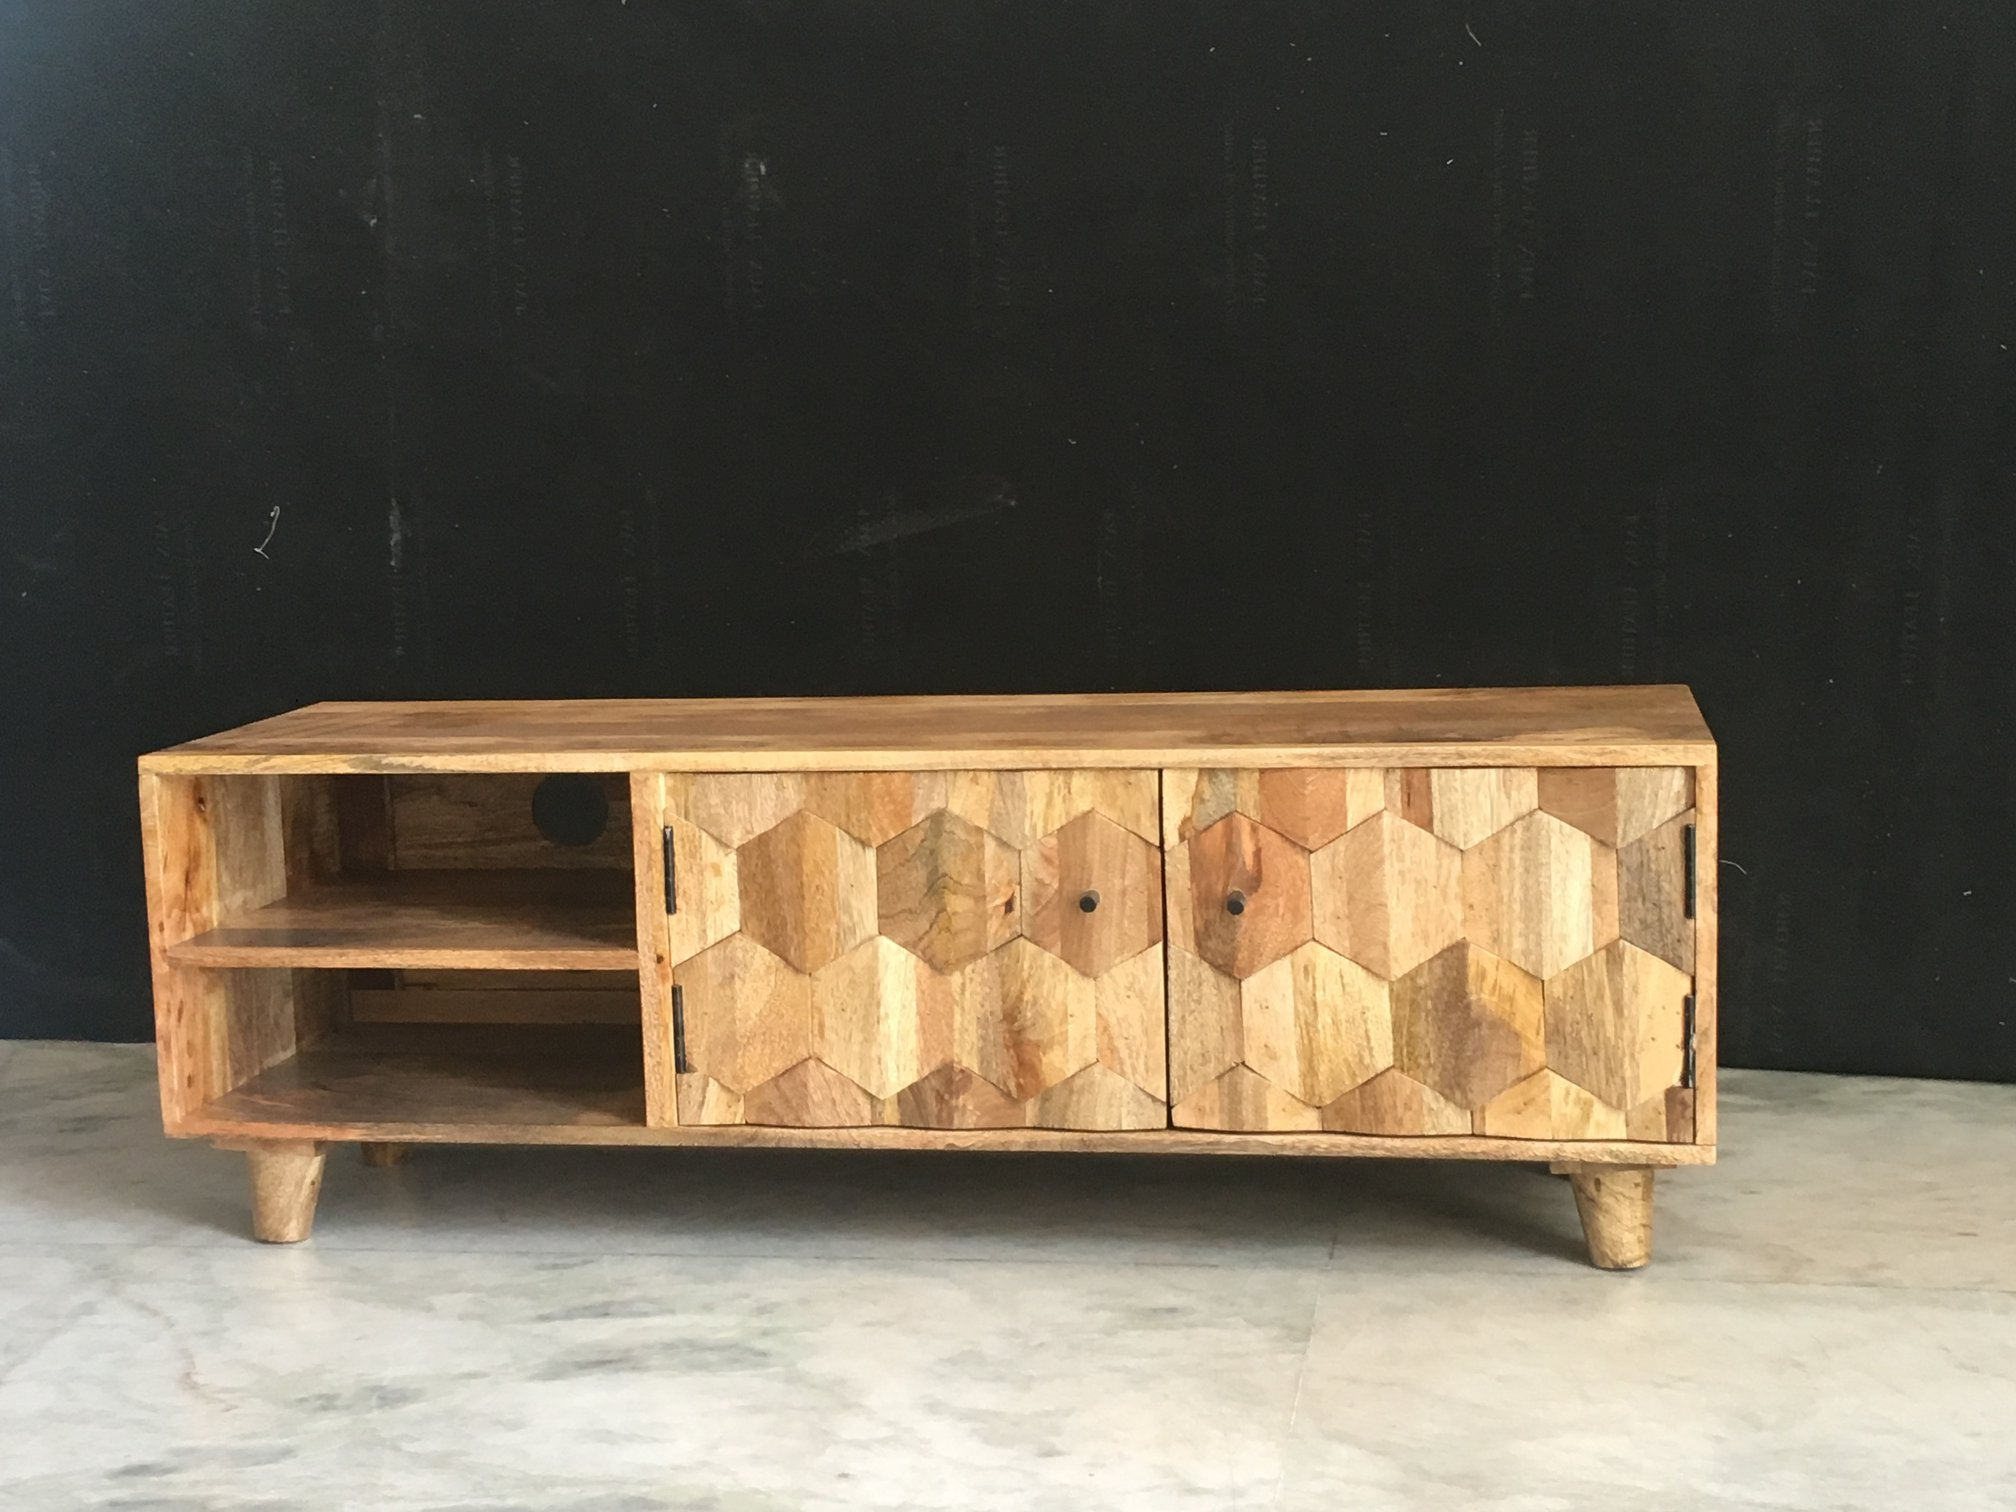 Mango Tv Units Throughout Widely Used Light Mango Wood Tv Stand / Media Unit With Hexagonal Patterns (View 14 of 20)